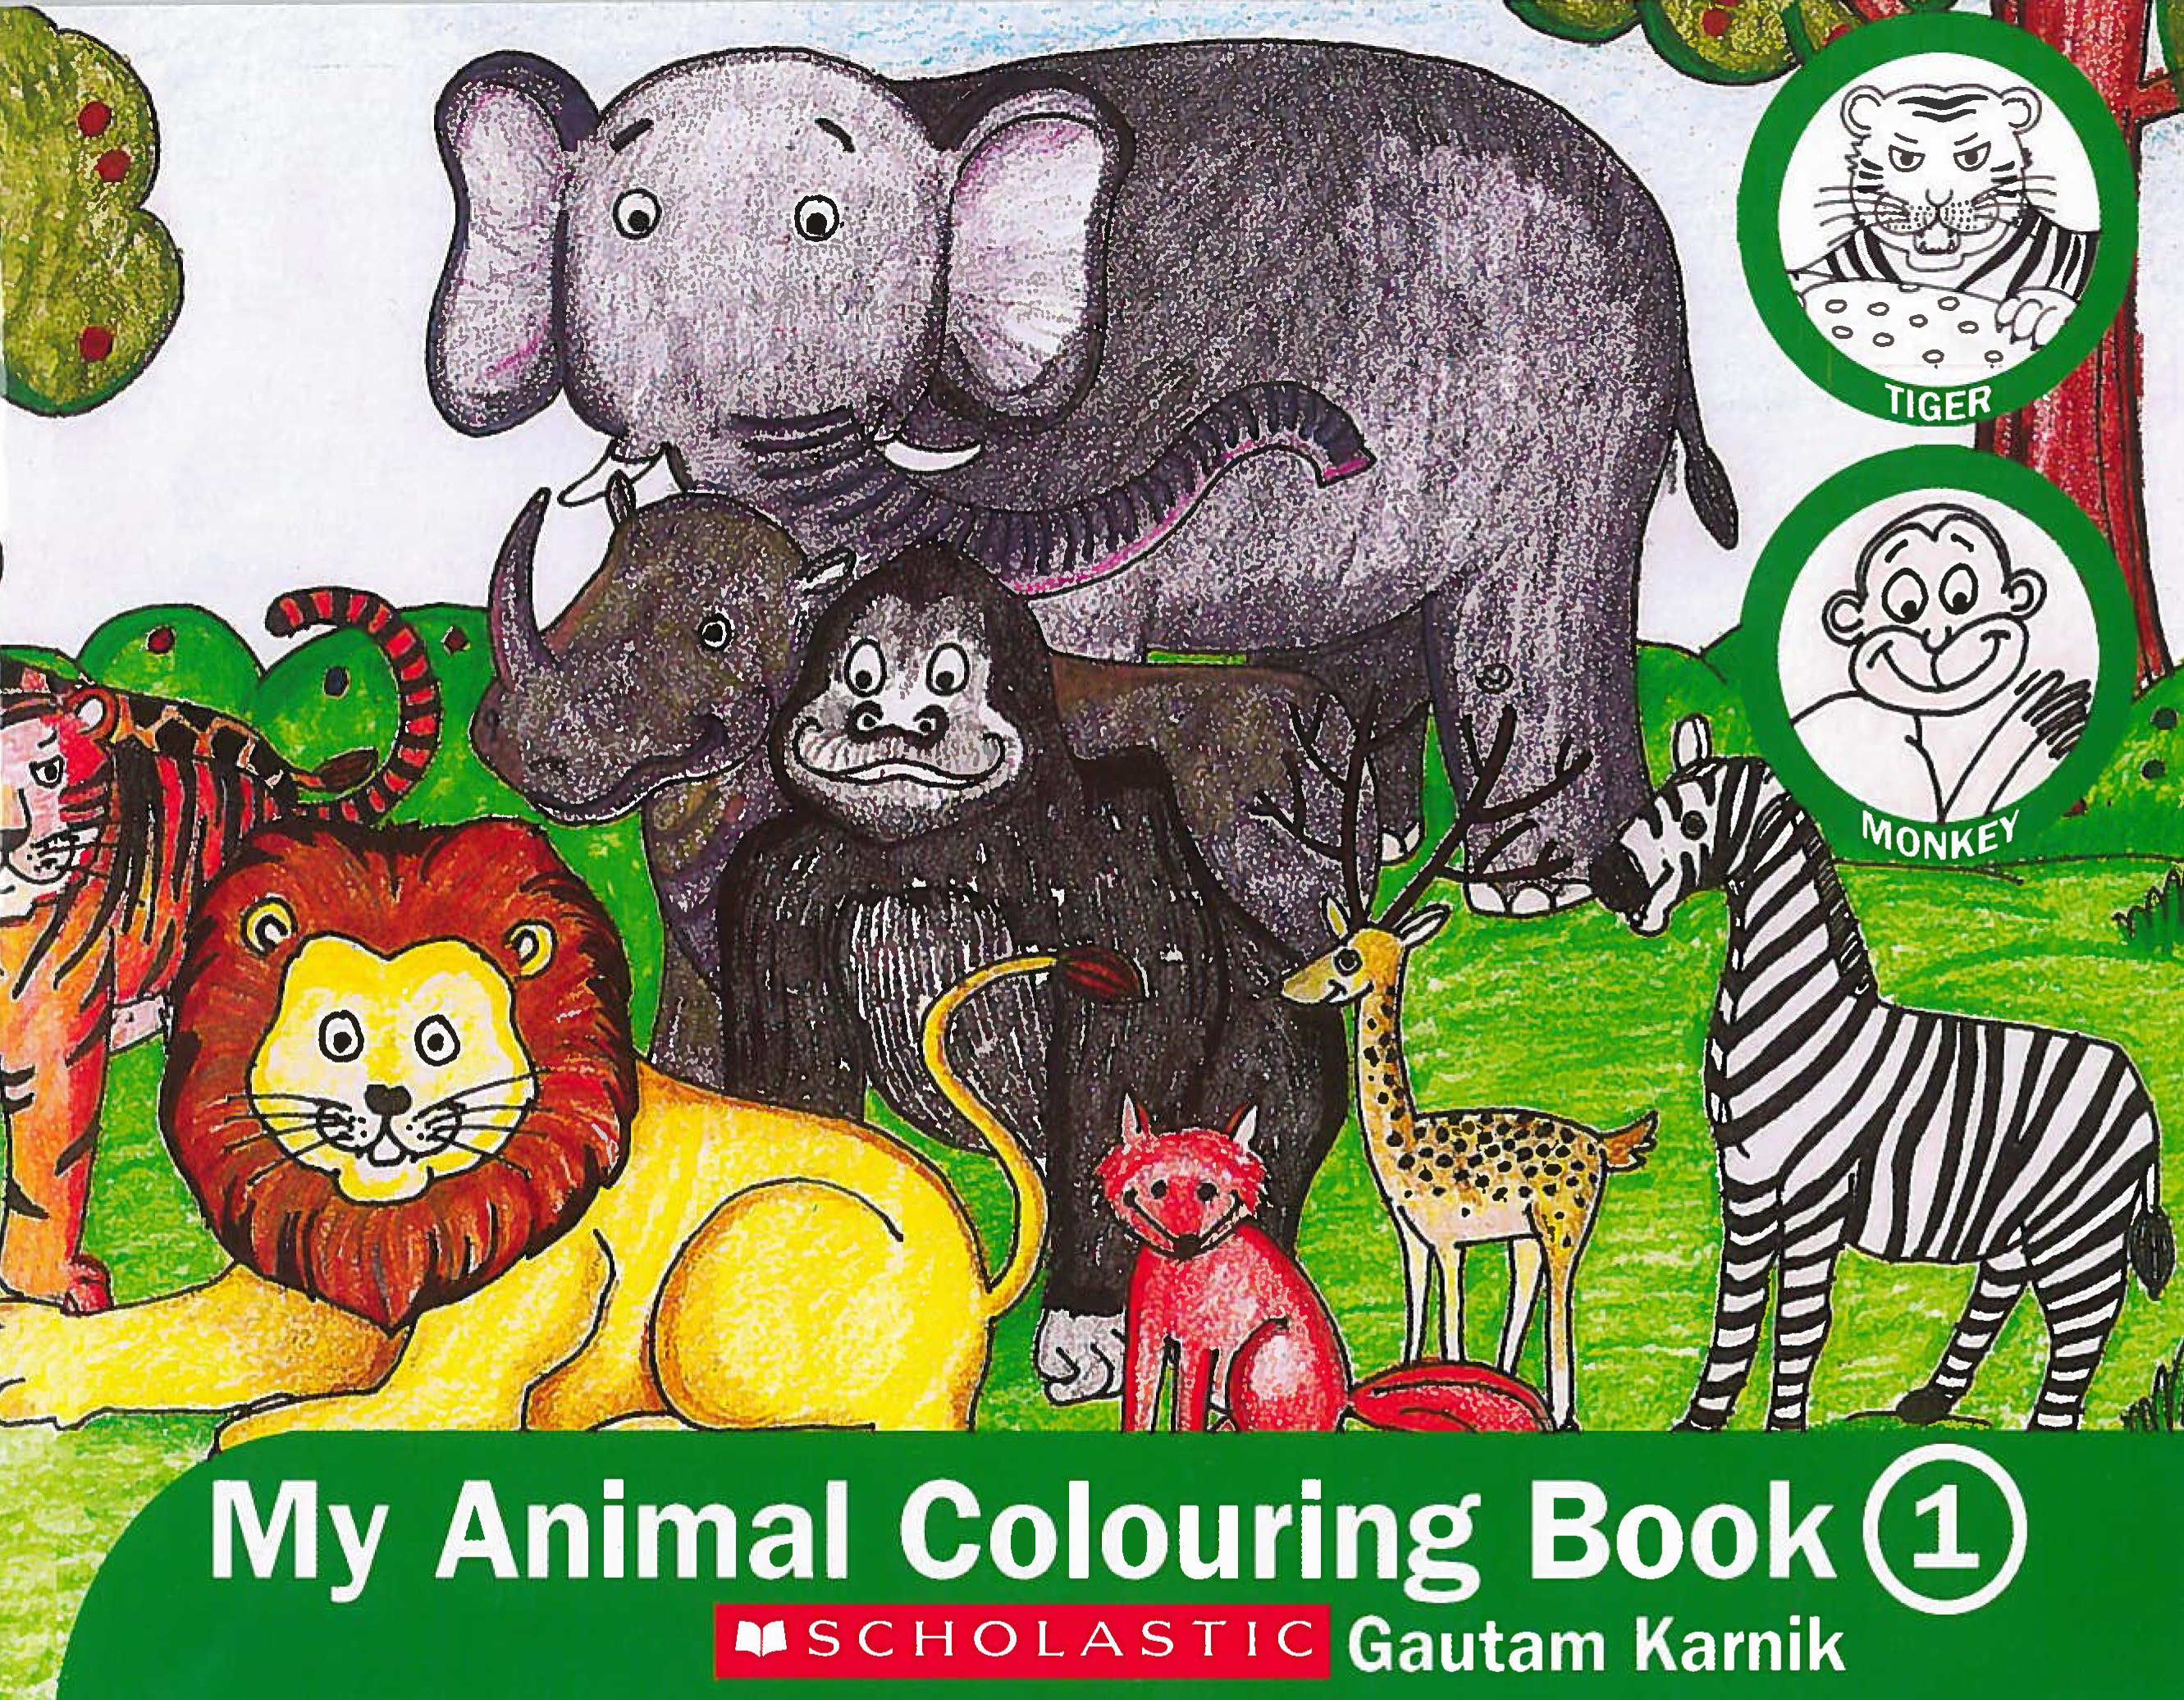 My Animal Colouring Book 1